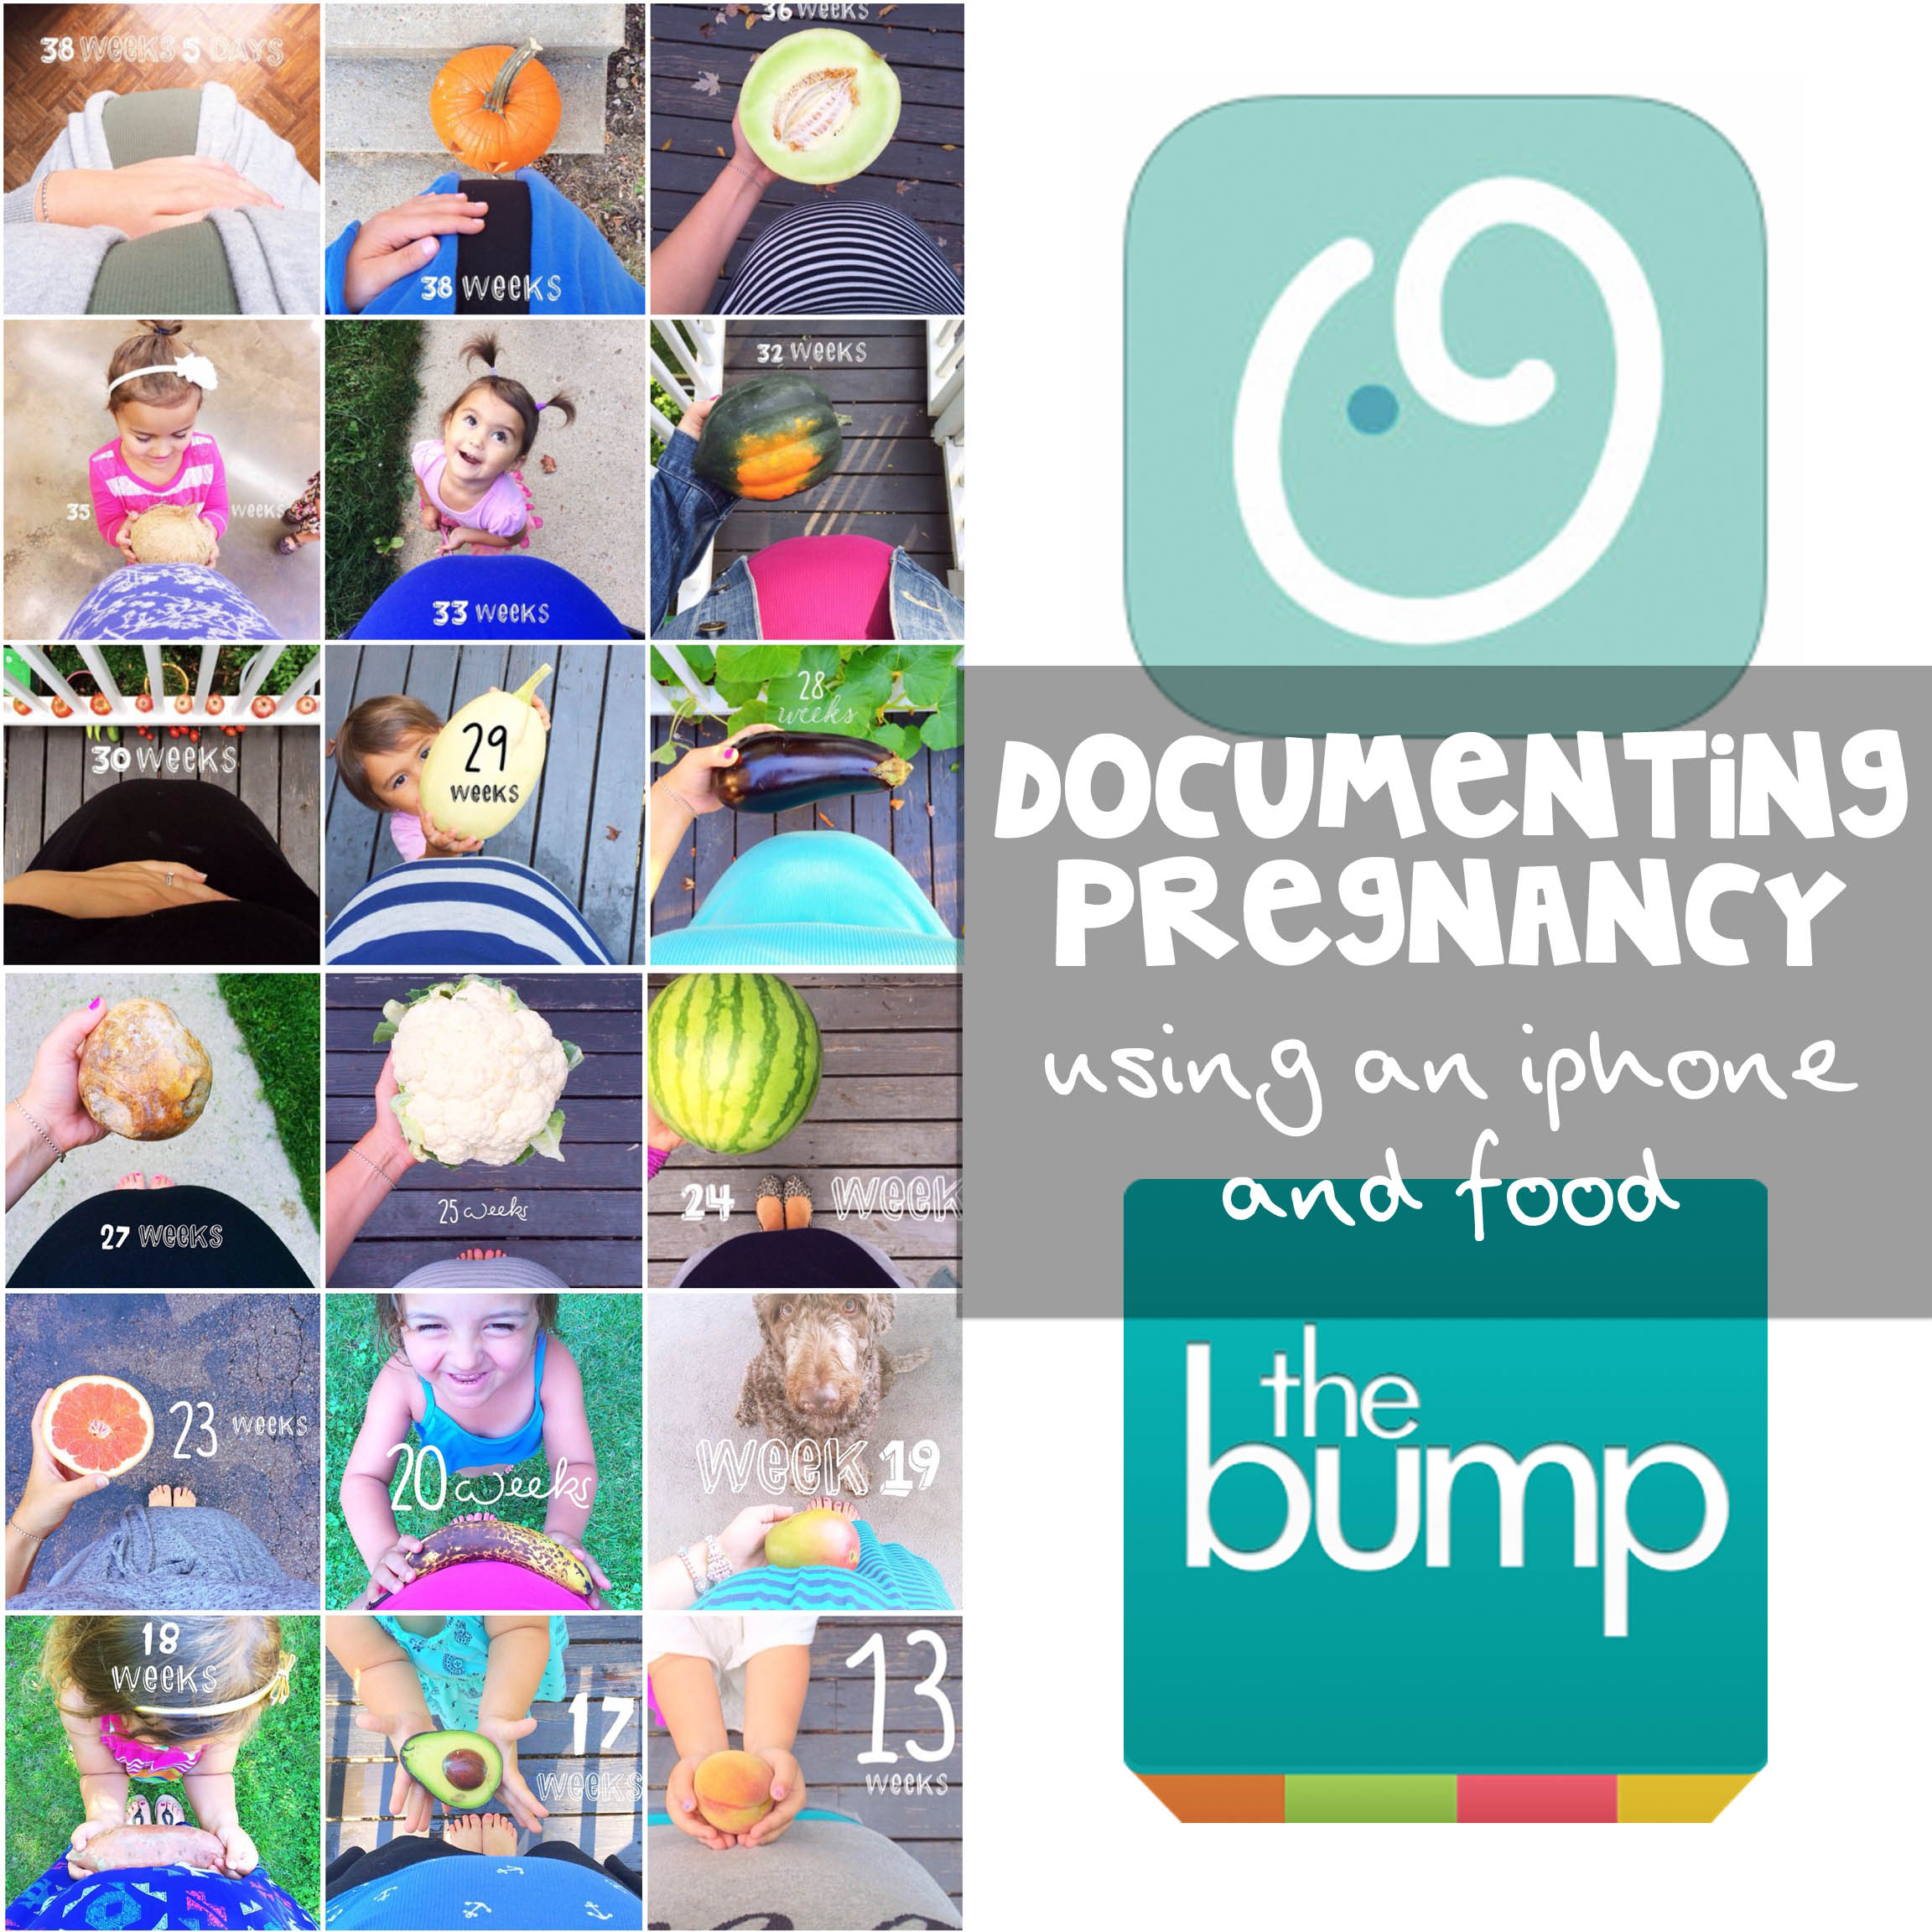 documenting pregnancy using an iphone and food